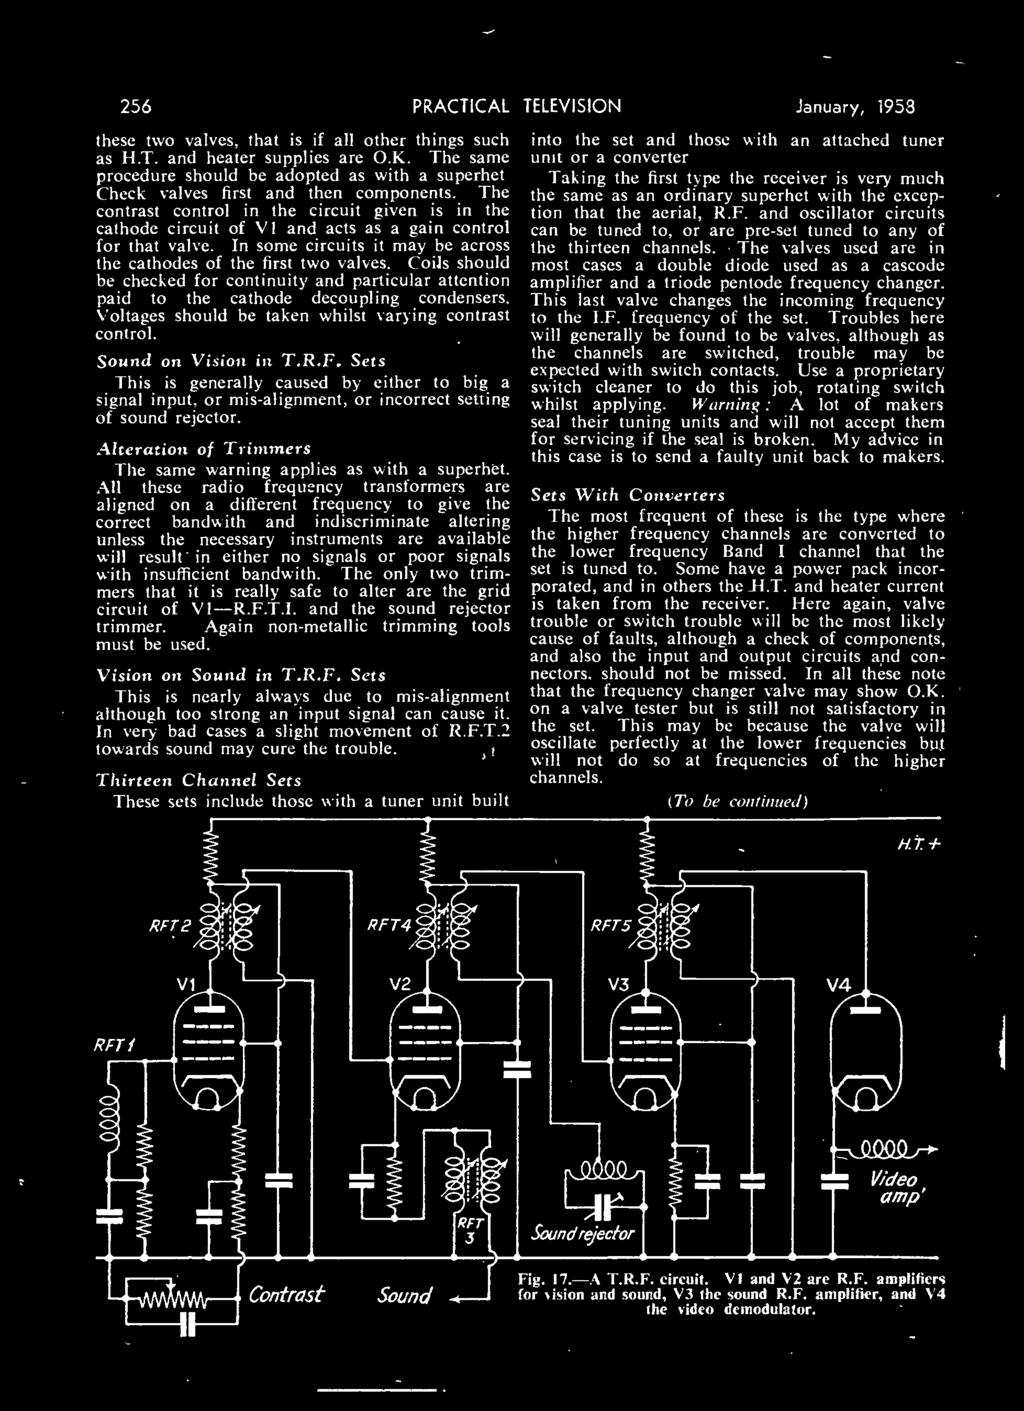 Making A Valve Voltmeter Pdf Police Siren Sound Circuit Diagram On Sel Generator Schematic 256 Practical These Two Valves That Is If All Other Things Such As Ht And